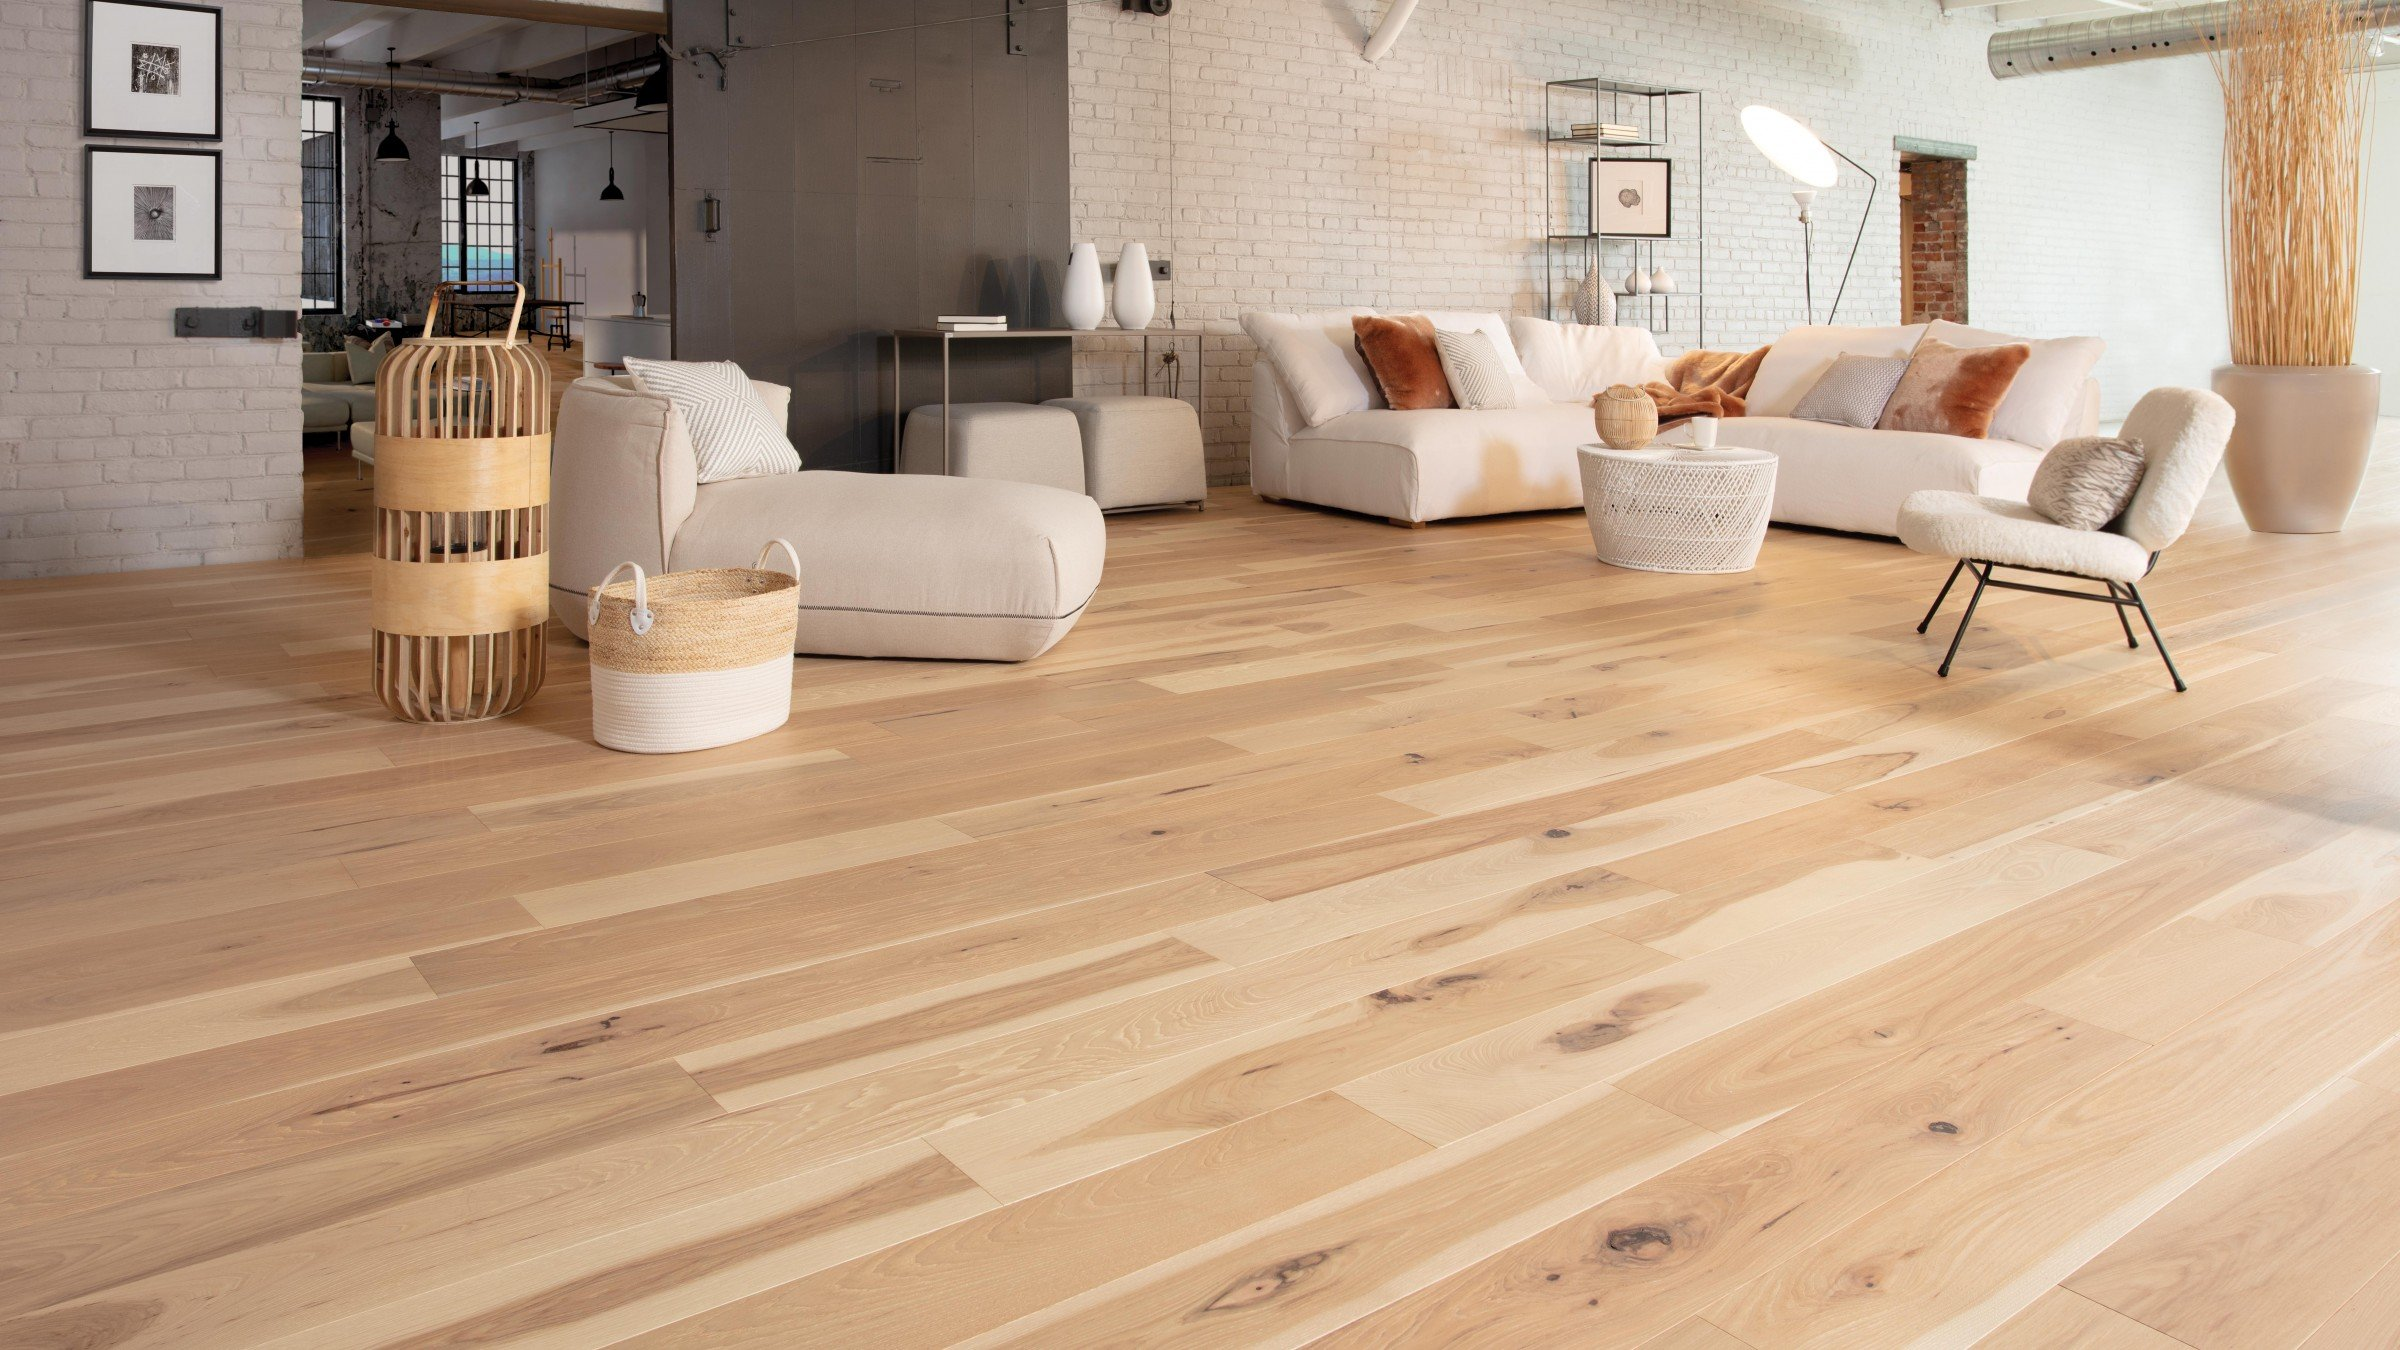 Top hardwood in Manhasset, NY from Anthony's World of Floors